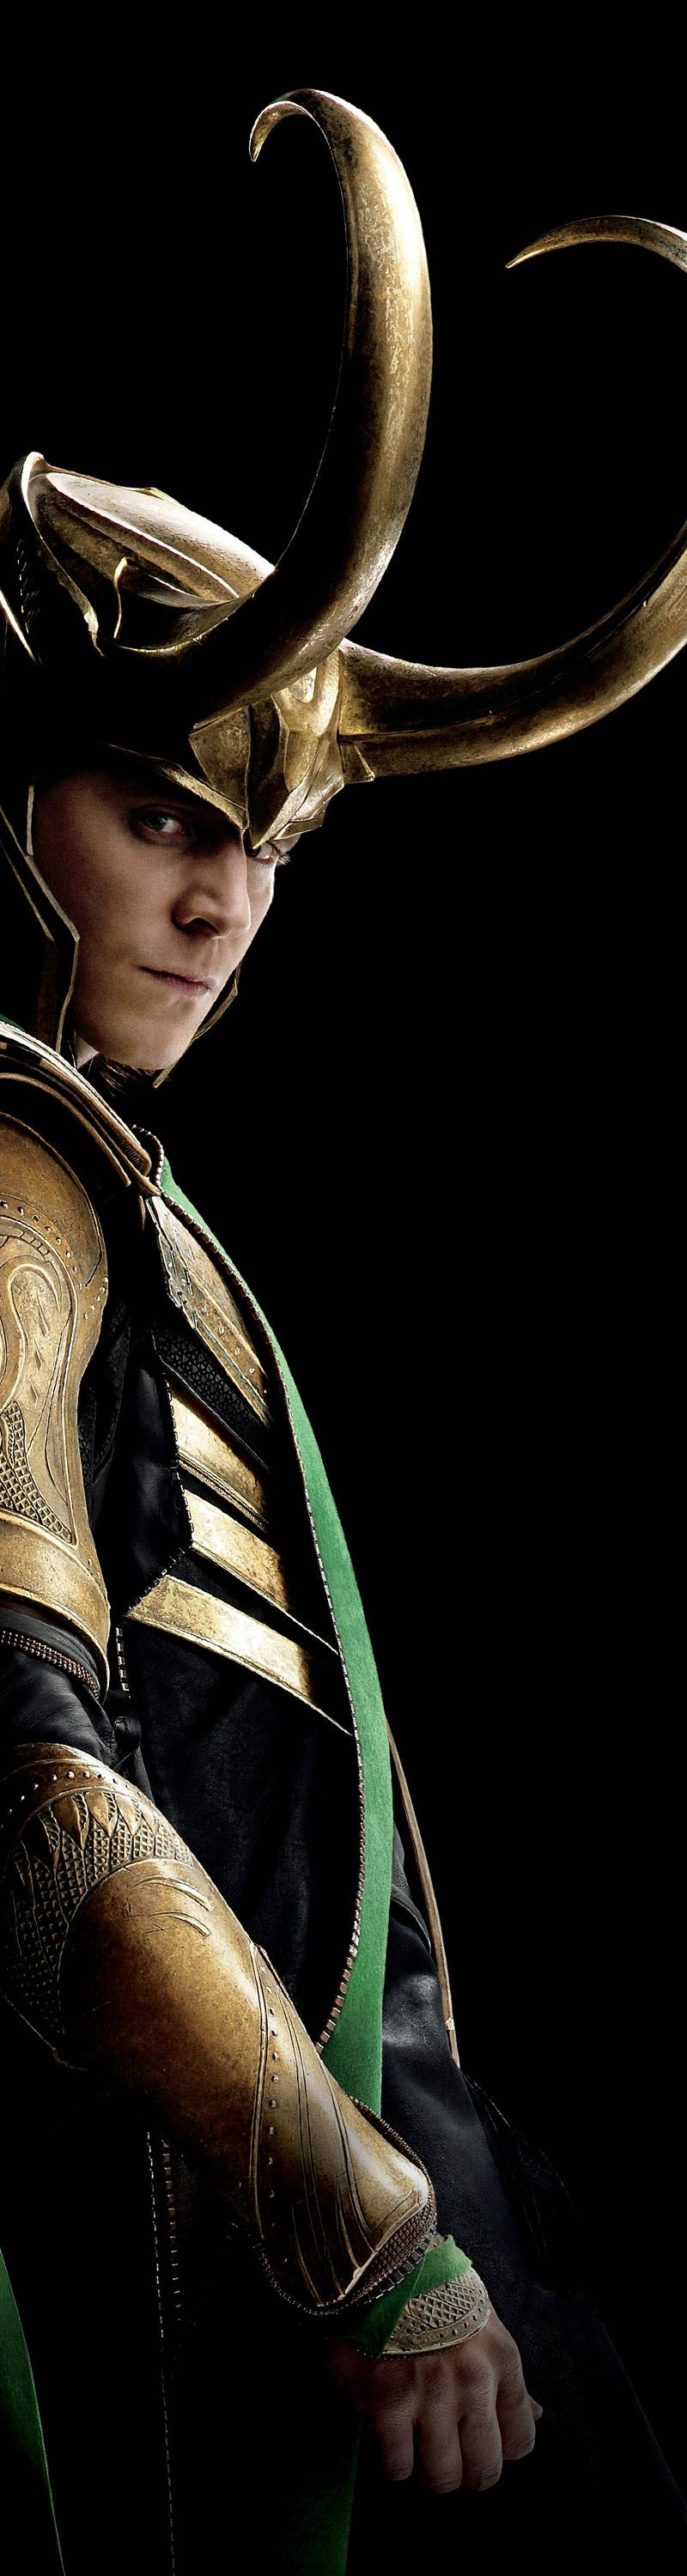 """It was mostly leather and metal – that's how we like it in Asgard. *winks* The heavier, the better.""  -Tom Hiddleston"